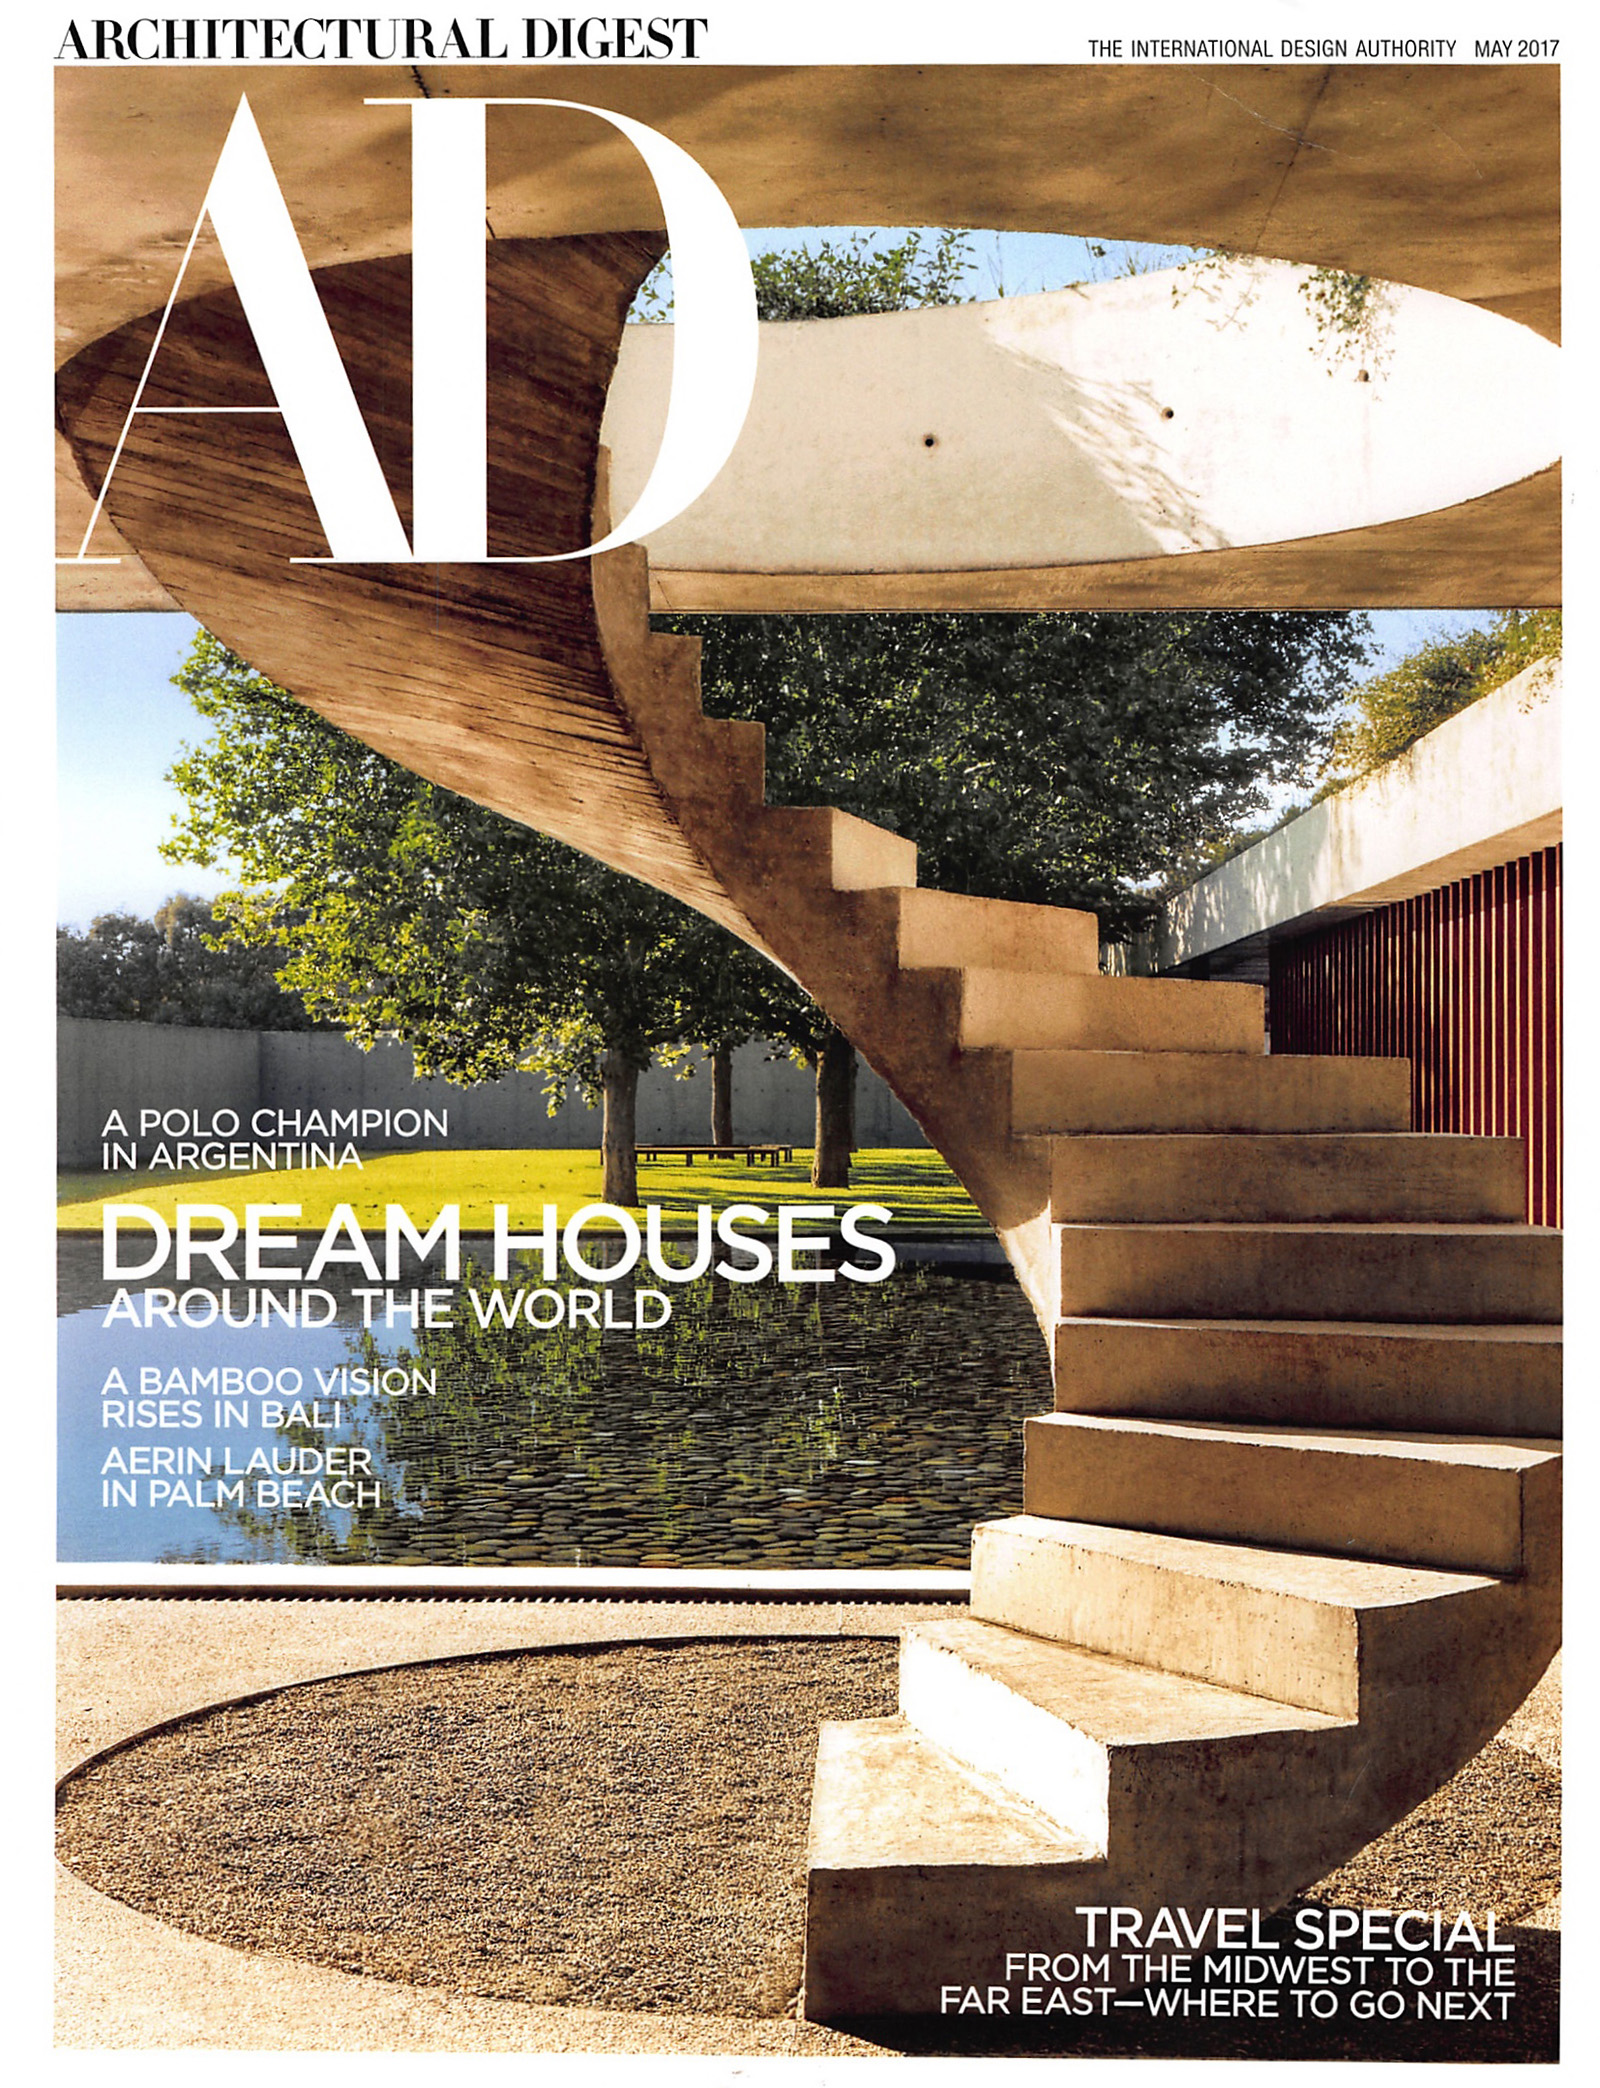 ADVERTISE HOME ARCHITECTURAL DIGEST